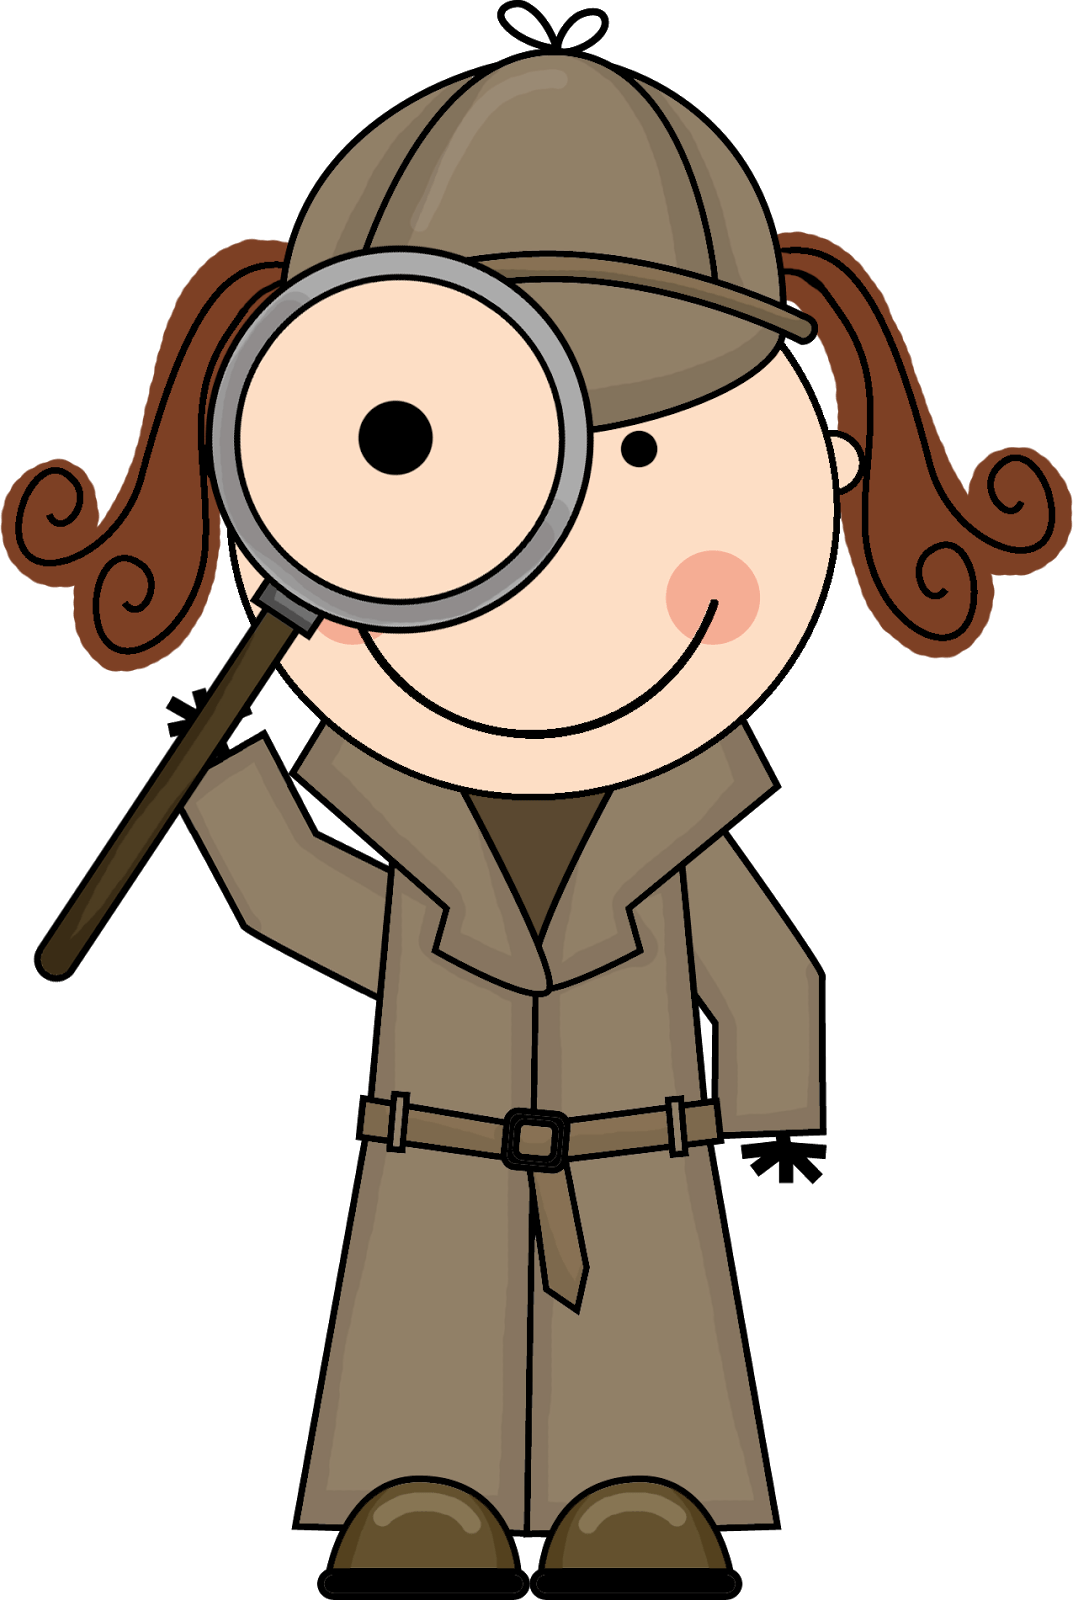 Detective clipart little. Evidence group hunting scene